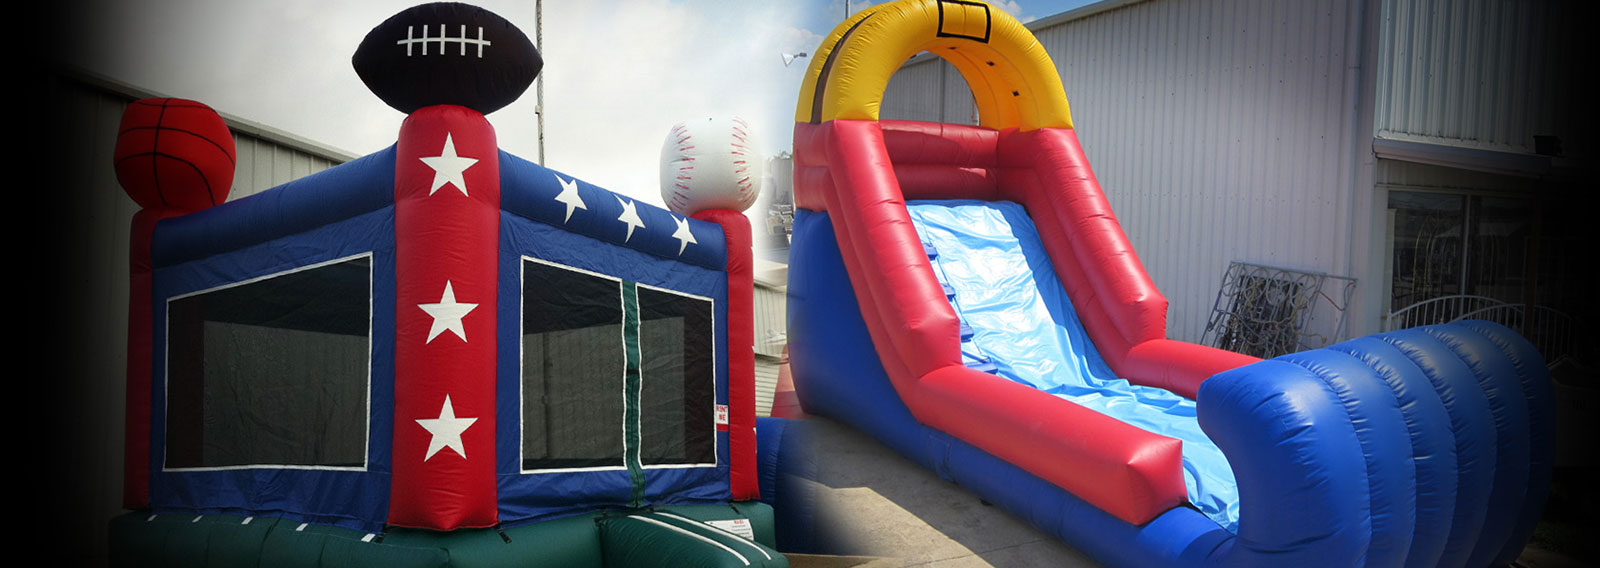 Carnival rentals in Terrell, Rockwall, Gun Barrel City and Mabank Texas